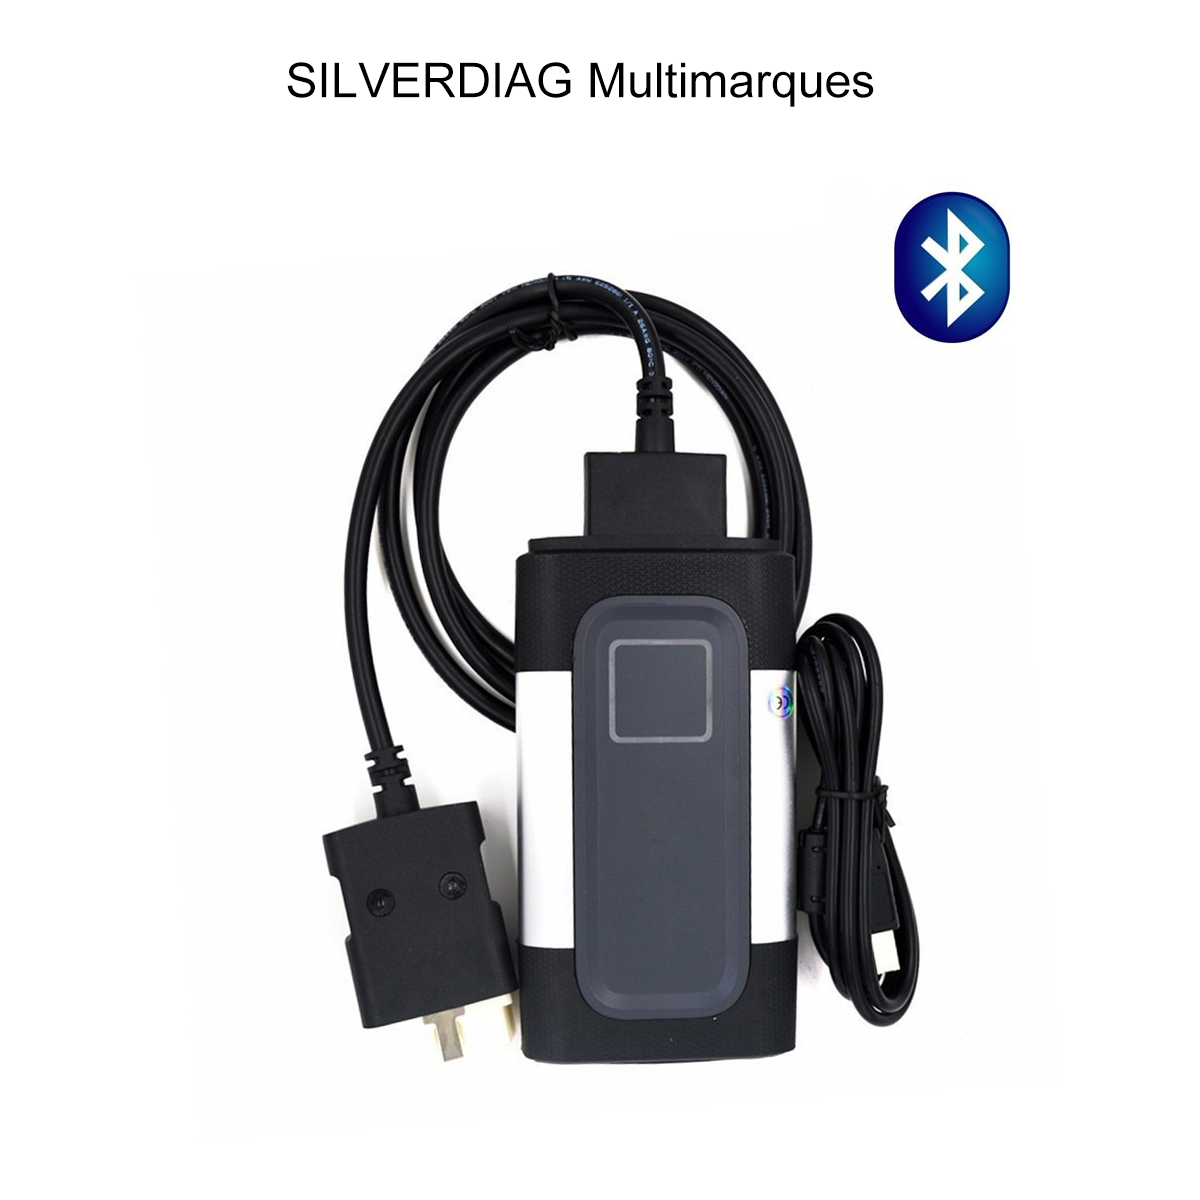 Valise de diagnostic SILVERDIAG Multimarques